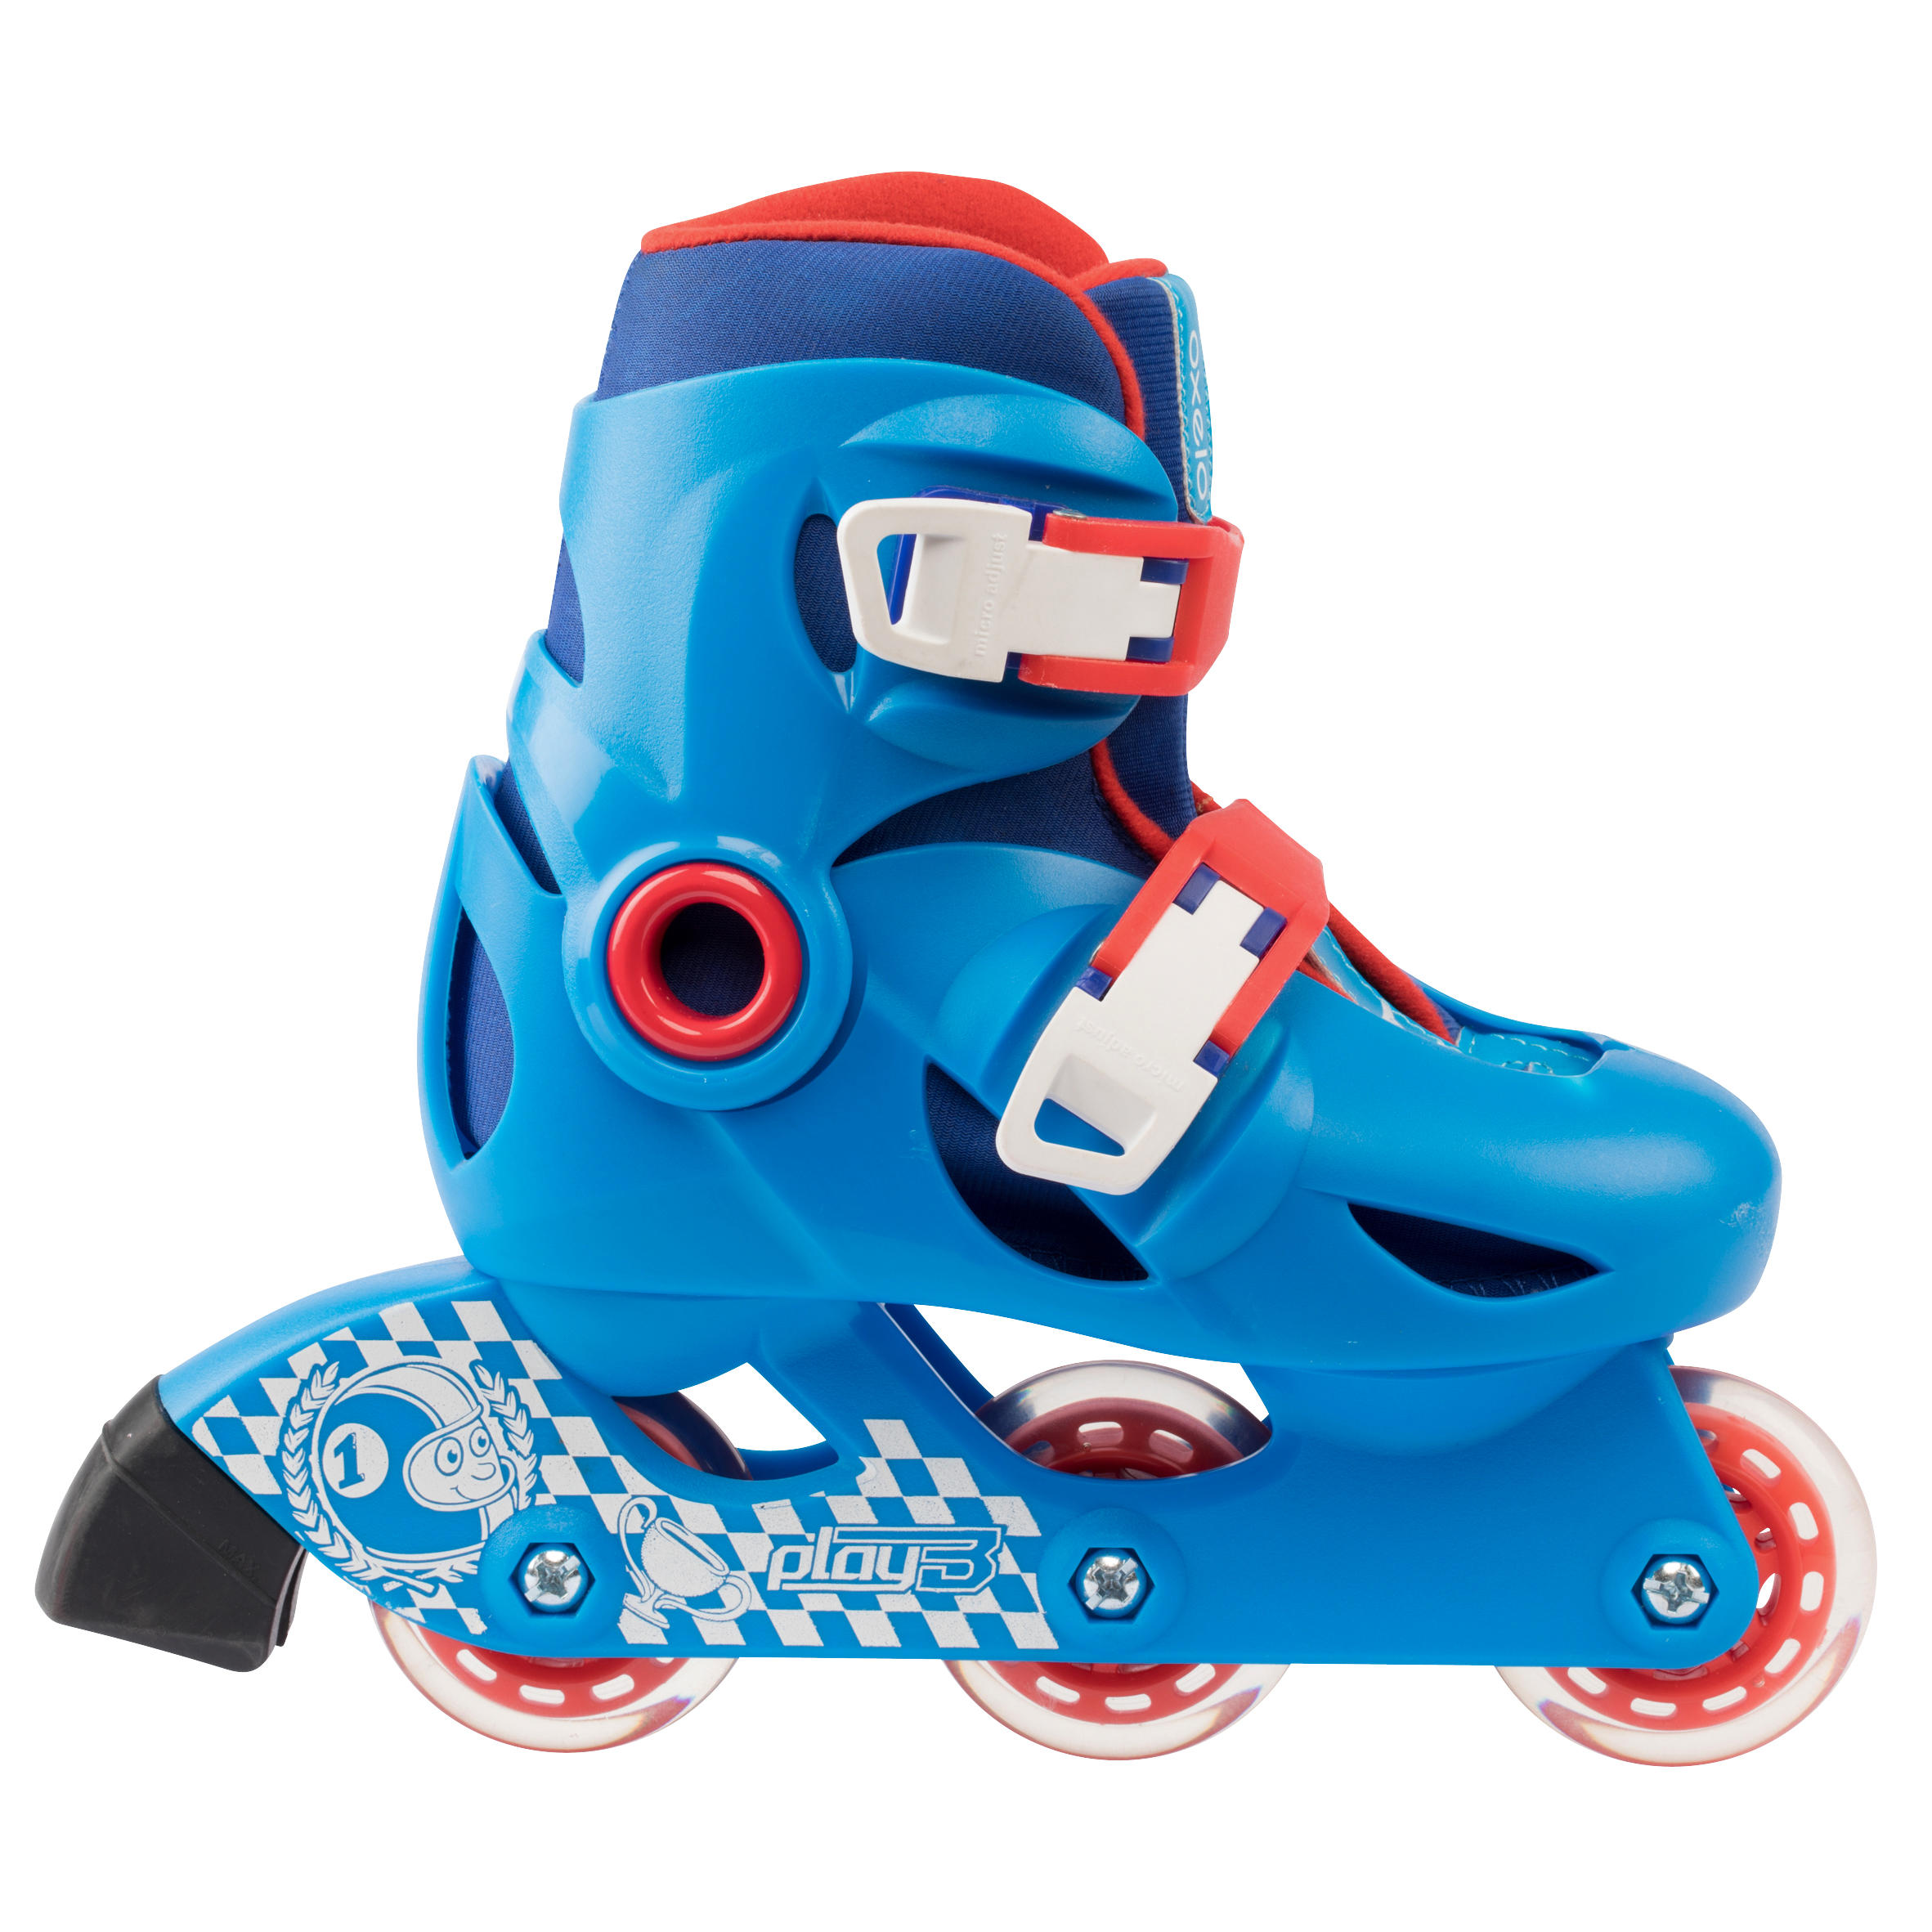 KIDS INLINE ROLLER SKATES PLAY 3 BLUE/RED